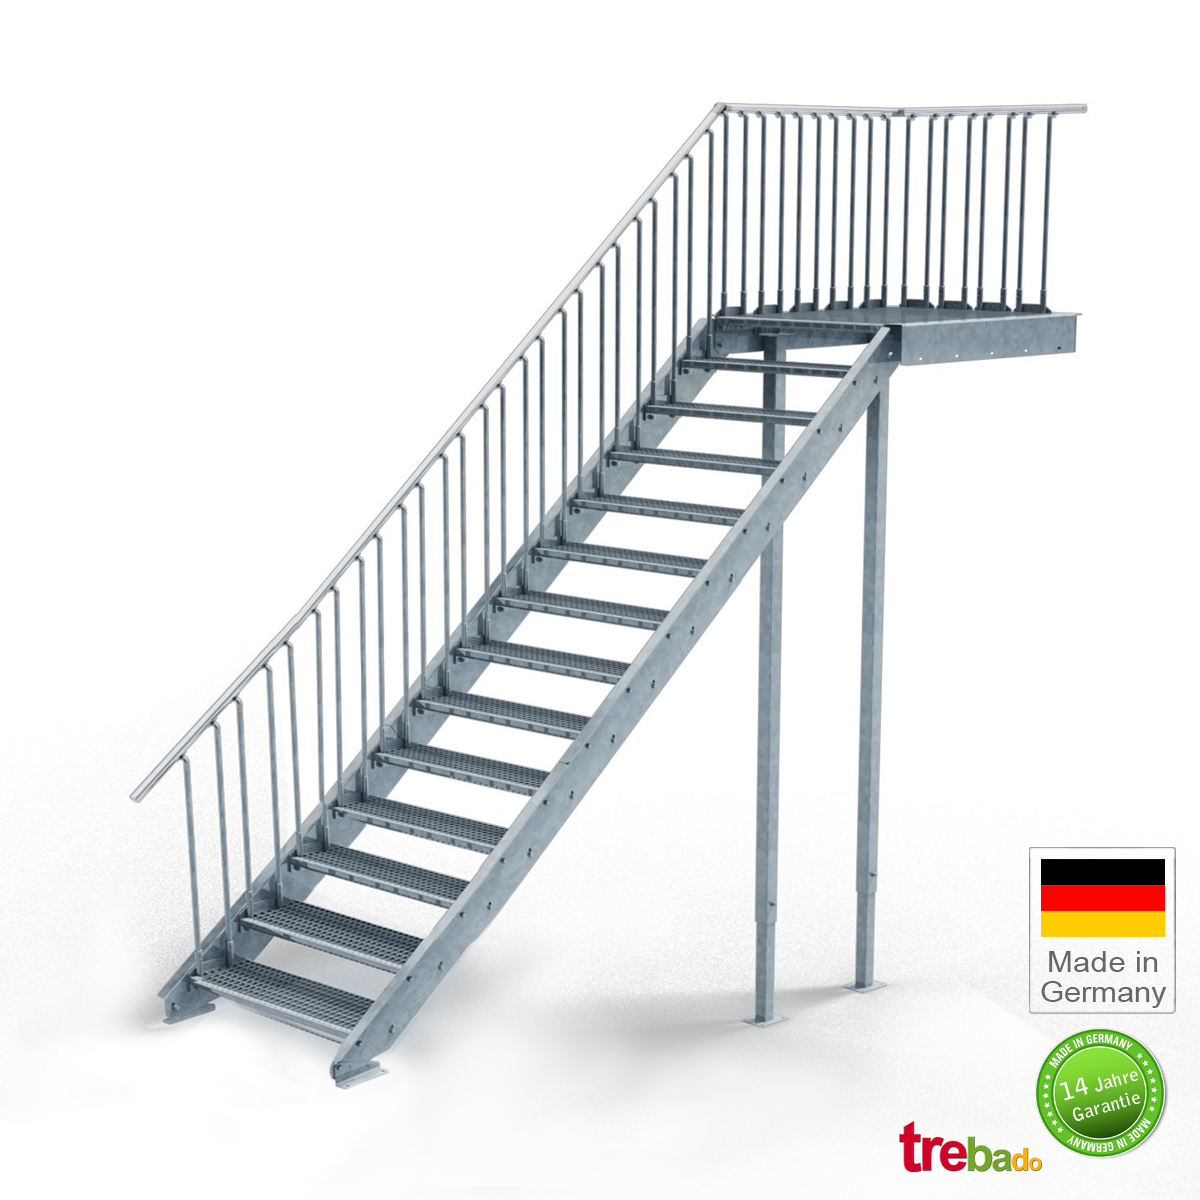 au entreppe gerade 14 steigungen laufweite 100 cm treppen bausatz do it yourself. Black Bedroom Furniture Sets. Home Design Ideas